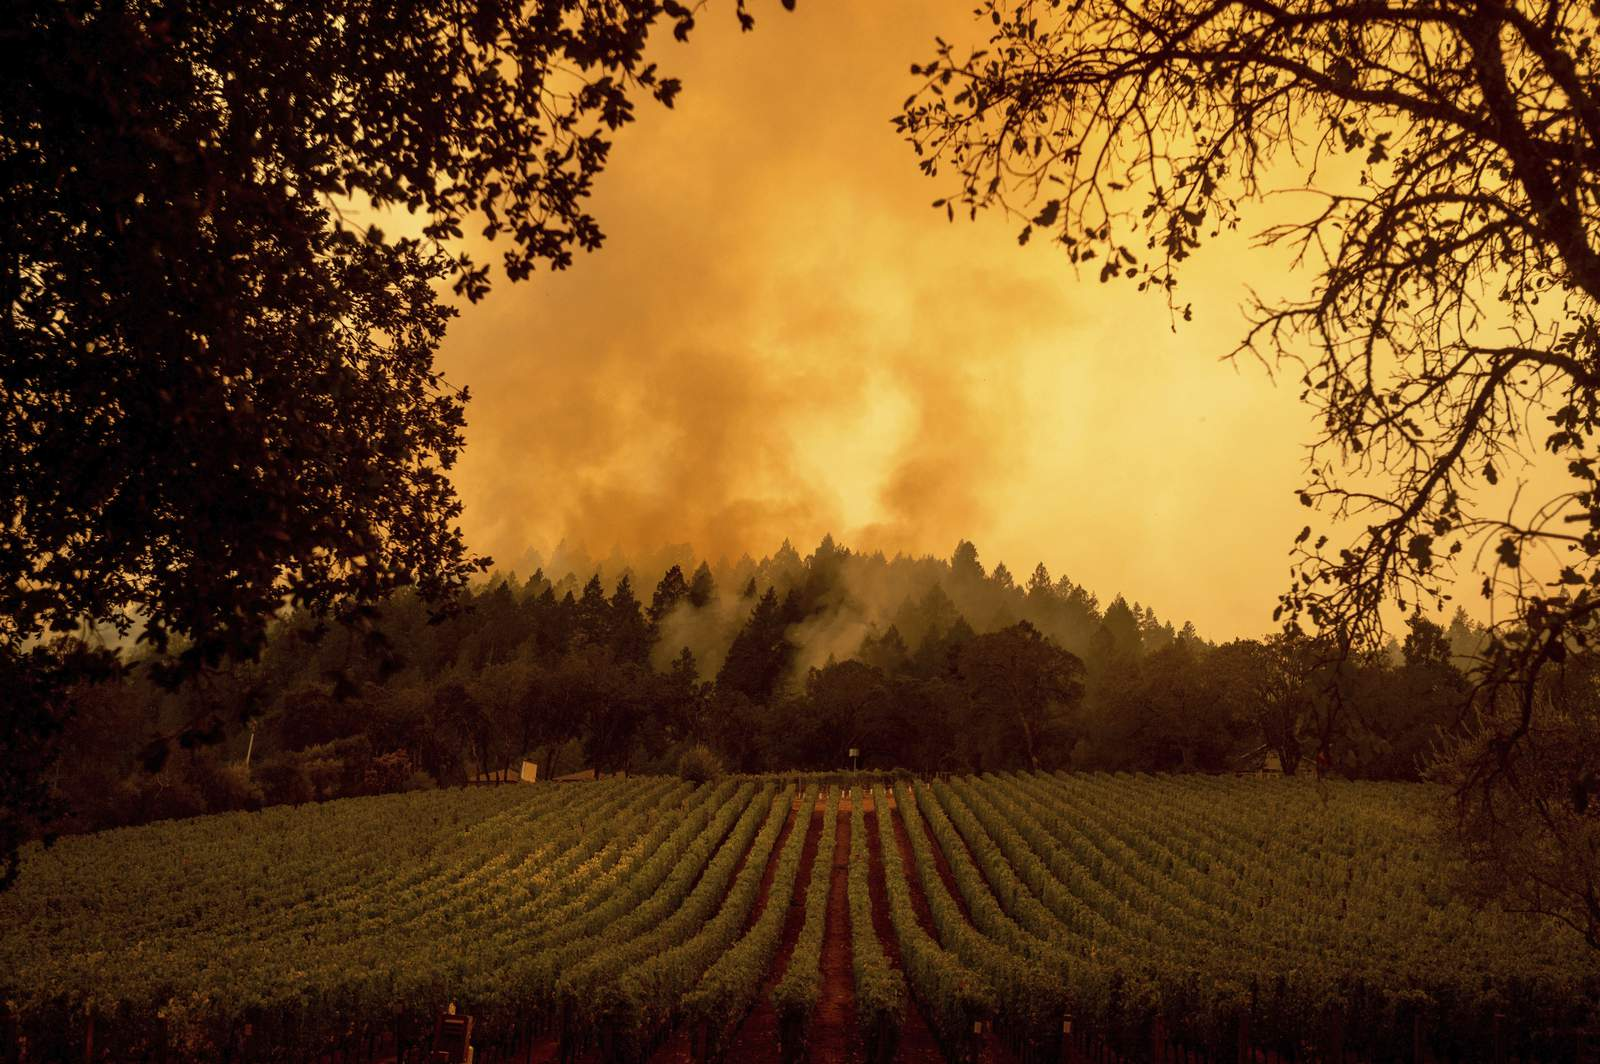 California's wine country residents facing fire fatigue